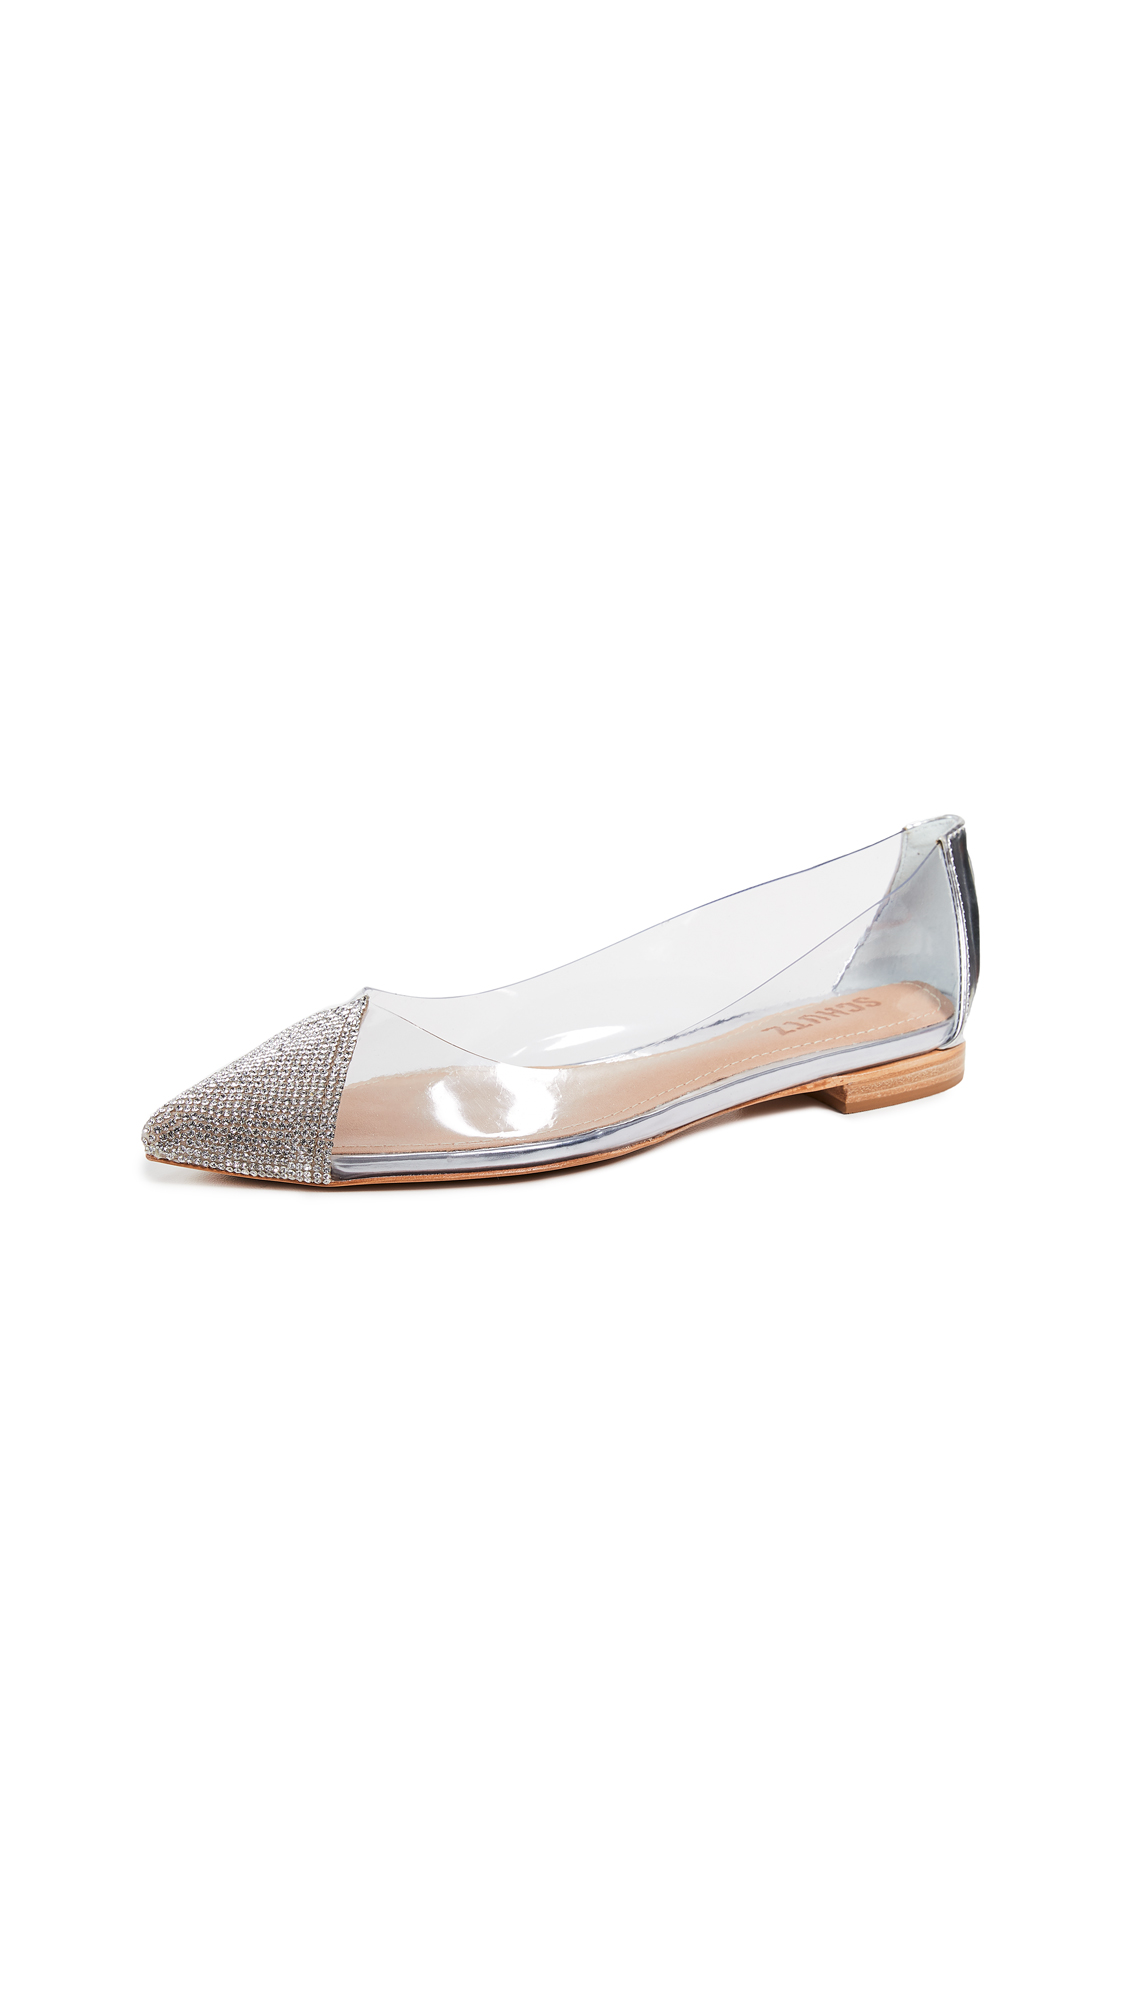 Schutz Taia Point Toe Vinyl Flats - Transparent